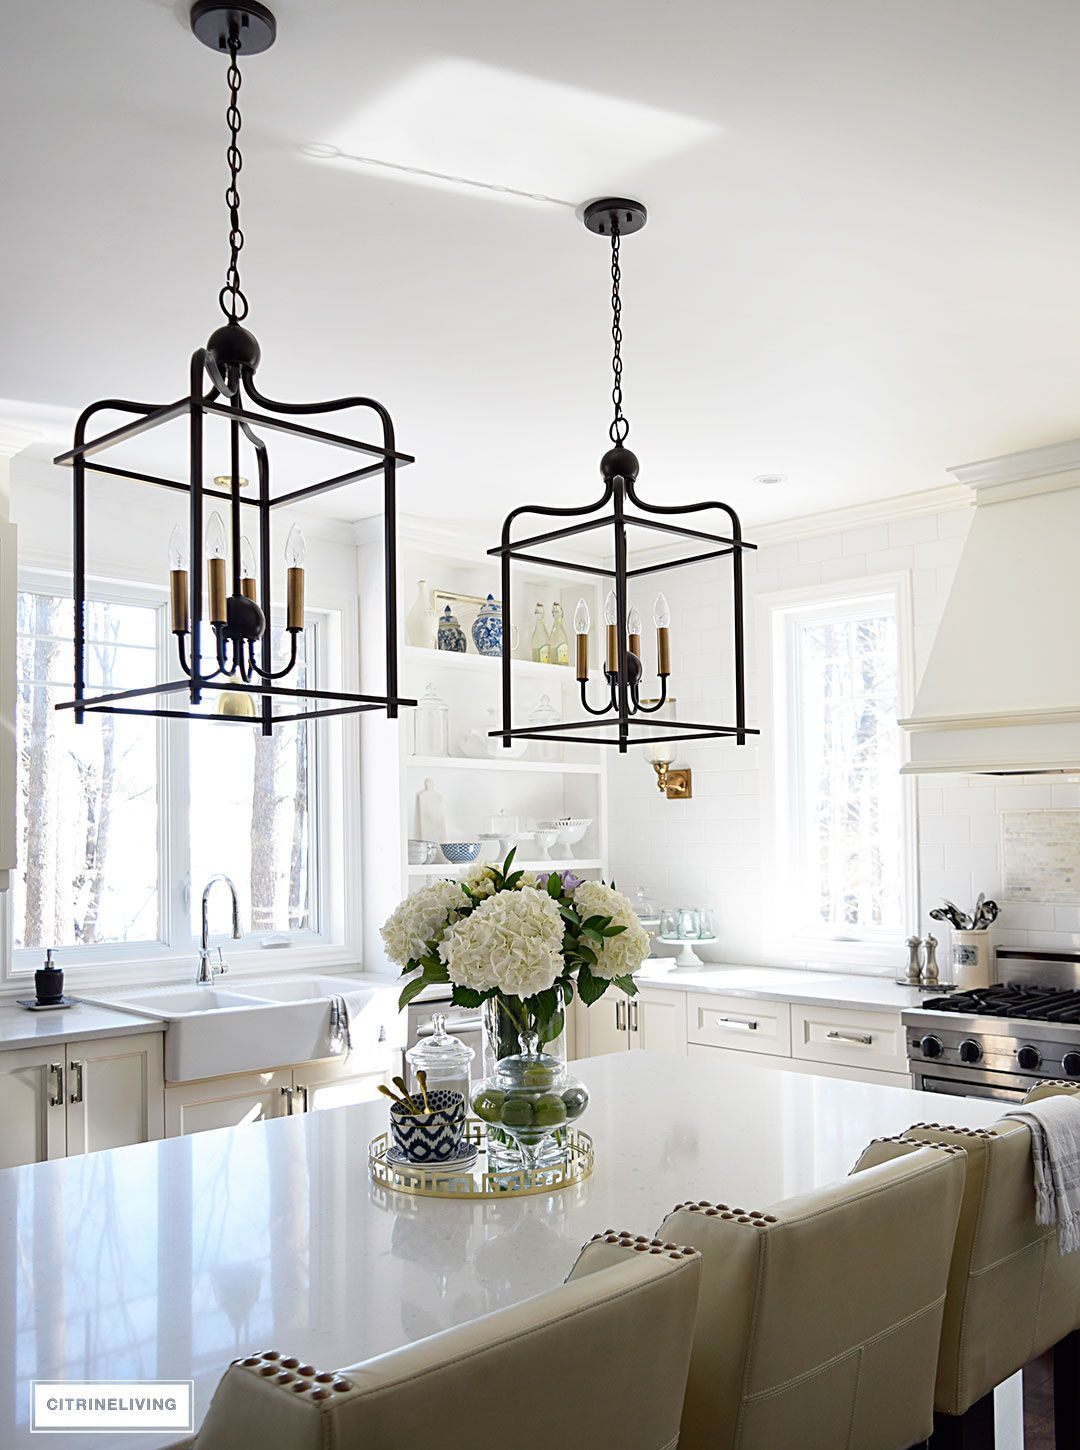 Bright and airy kitchen with two tone lantern style pendant lighting bright and airy kitchen with two tone lantern style pendant lighting over the island aloadofball Choice Image